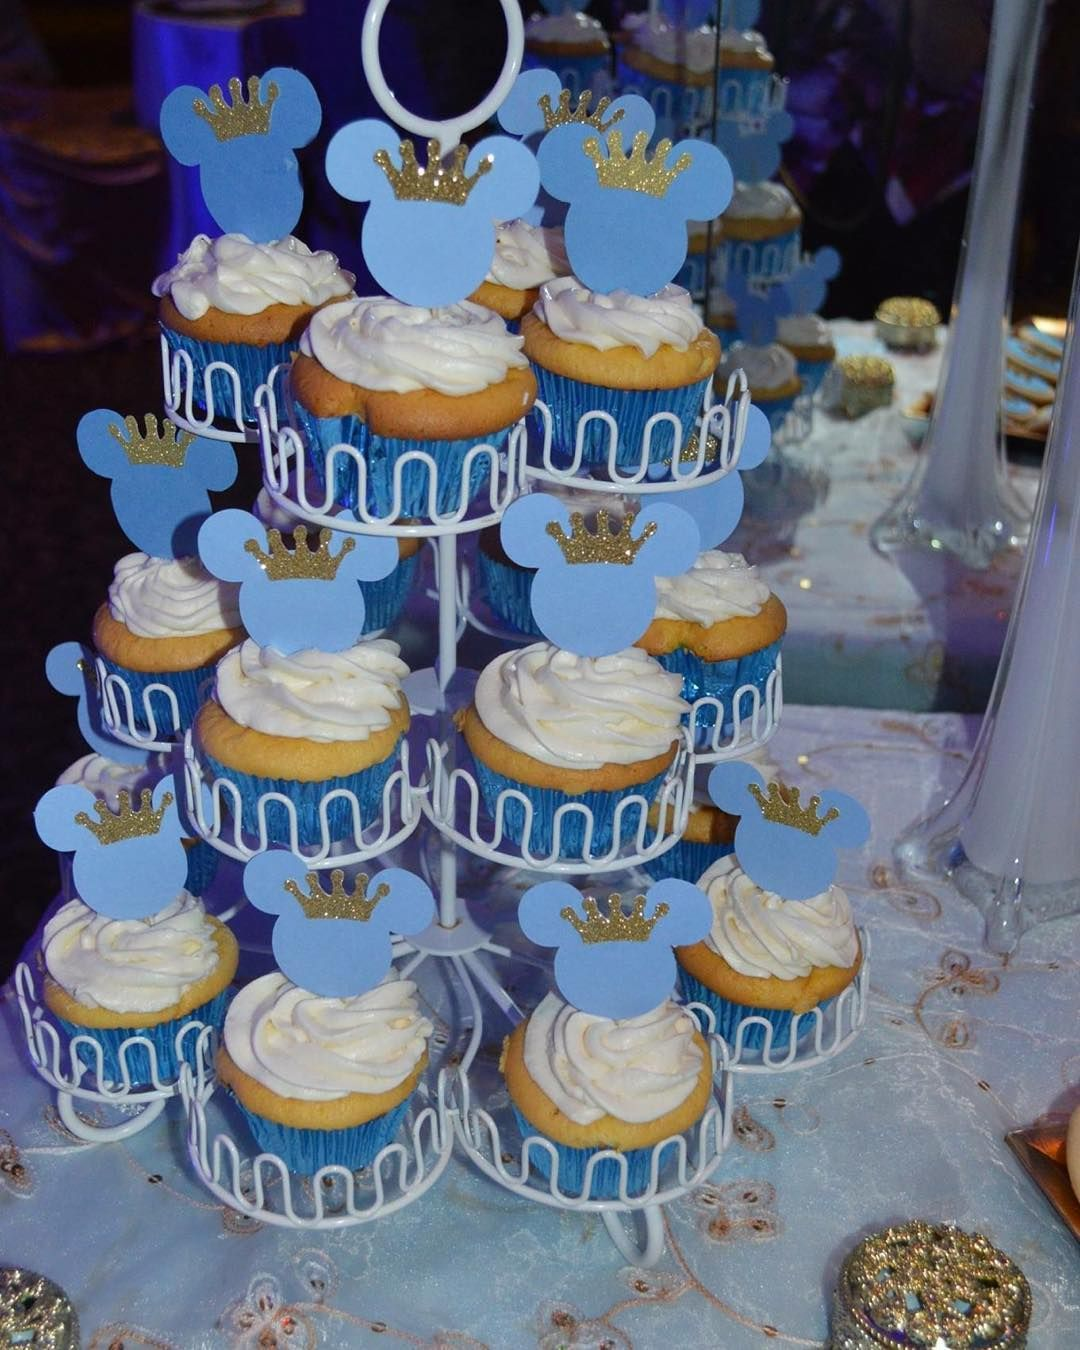 Cake Design In Hialeah : ?Prince Mickey cupcakes #cupcakes #princemickey #prince # ...